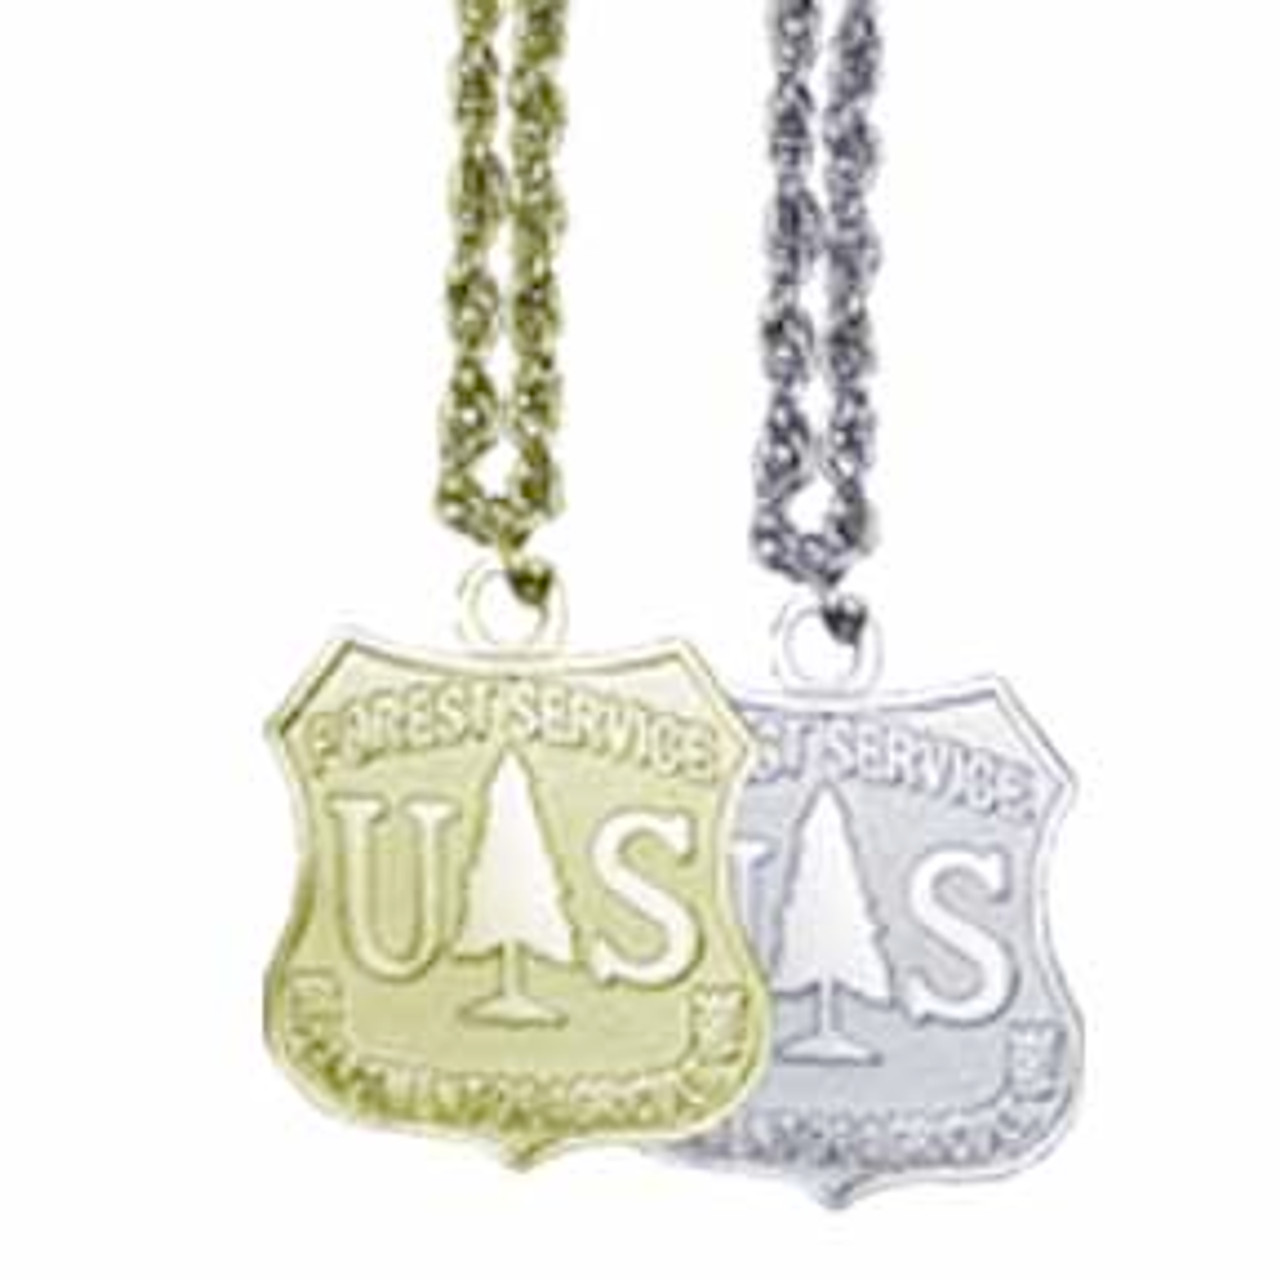 Forest Service Shield Necklace (Gold)